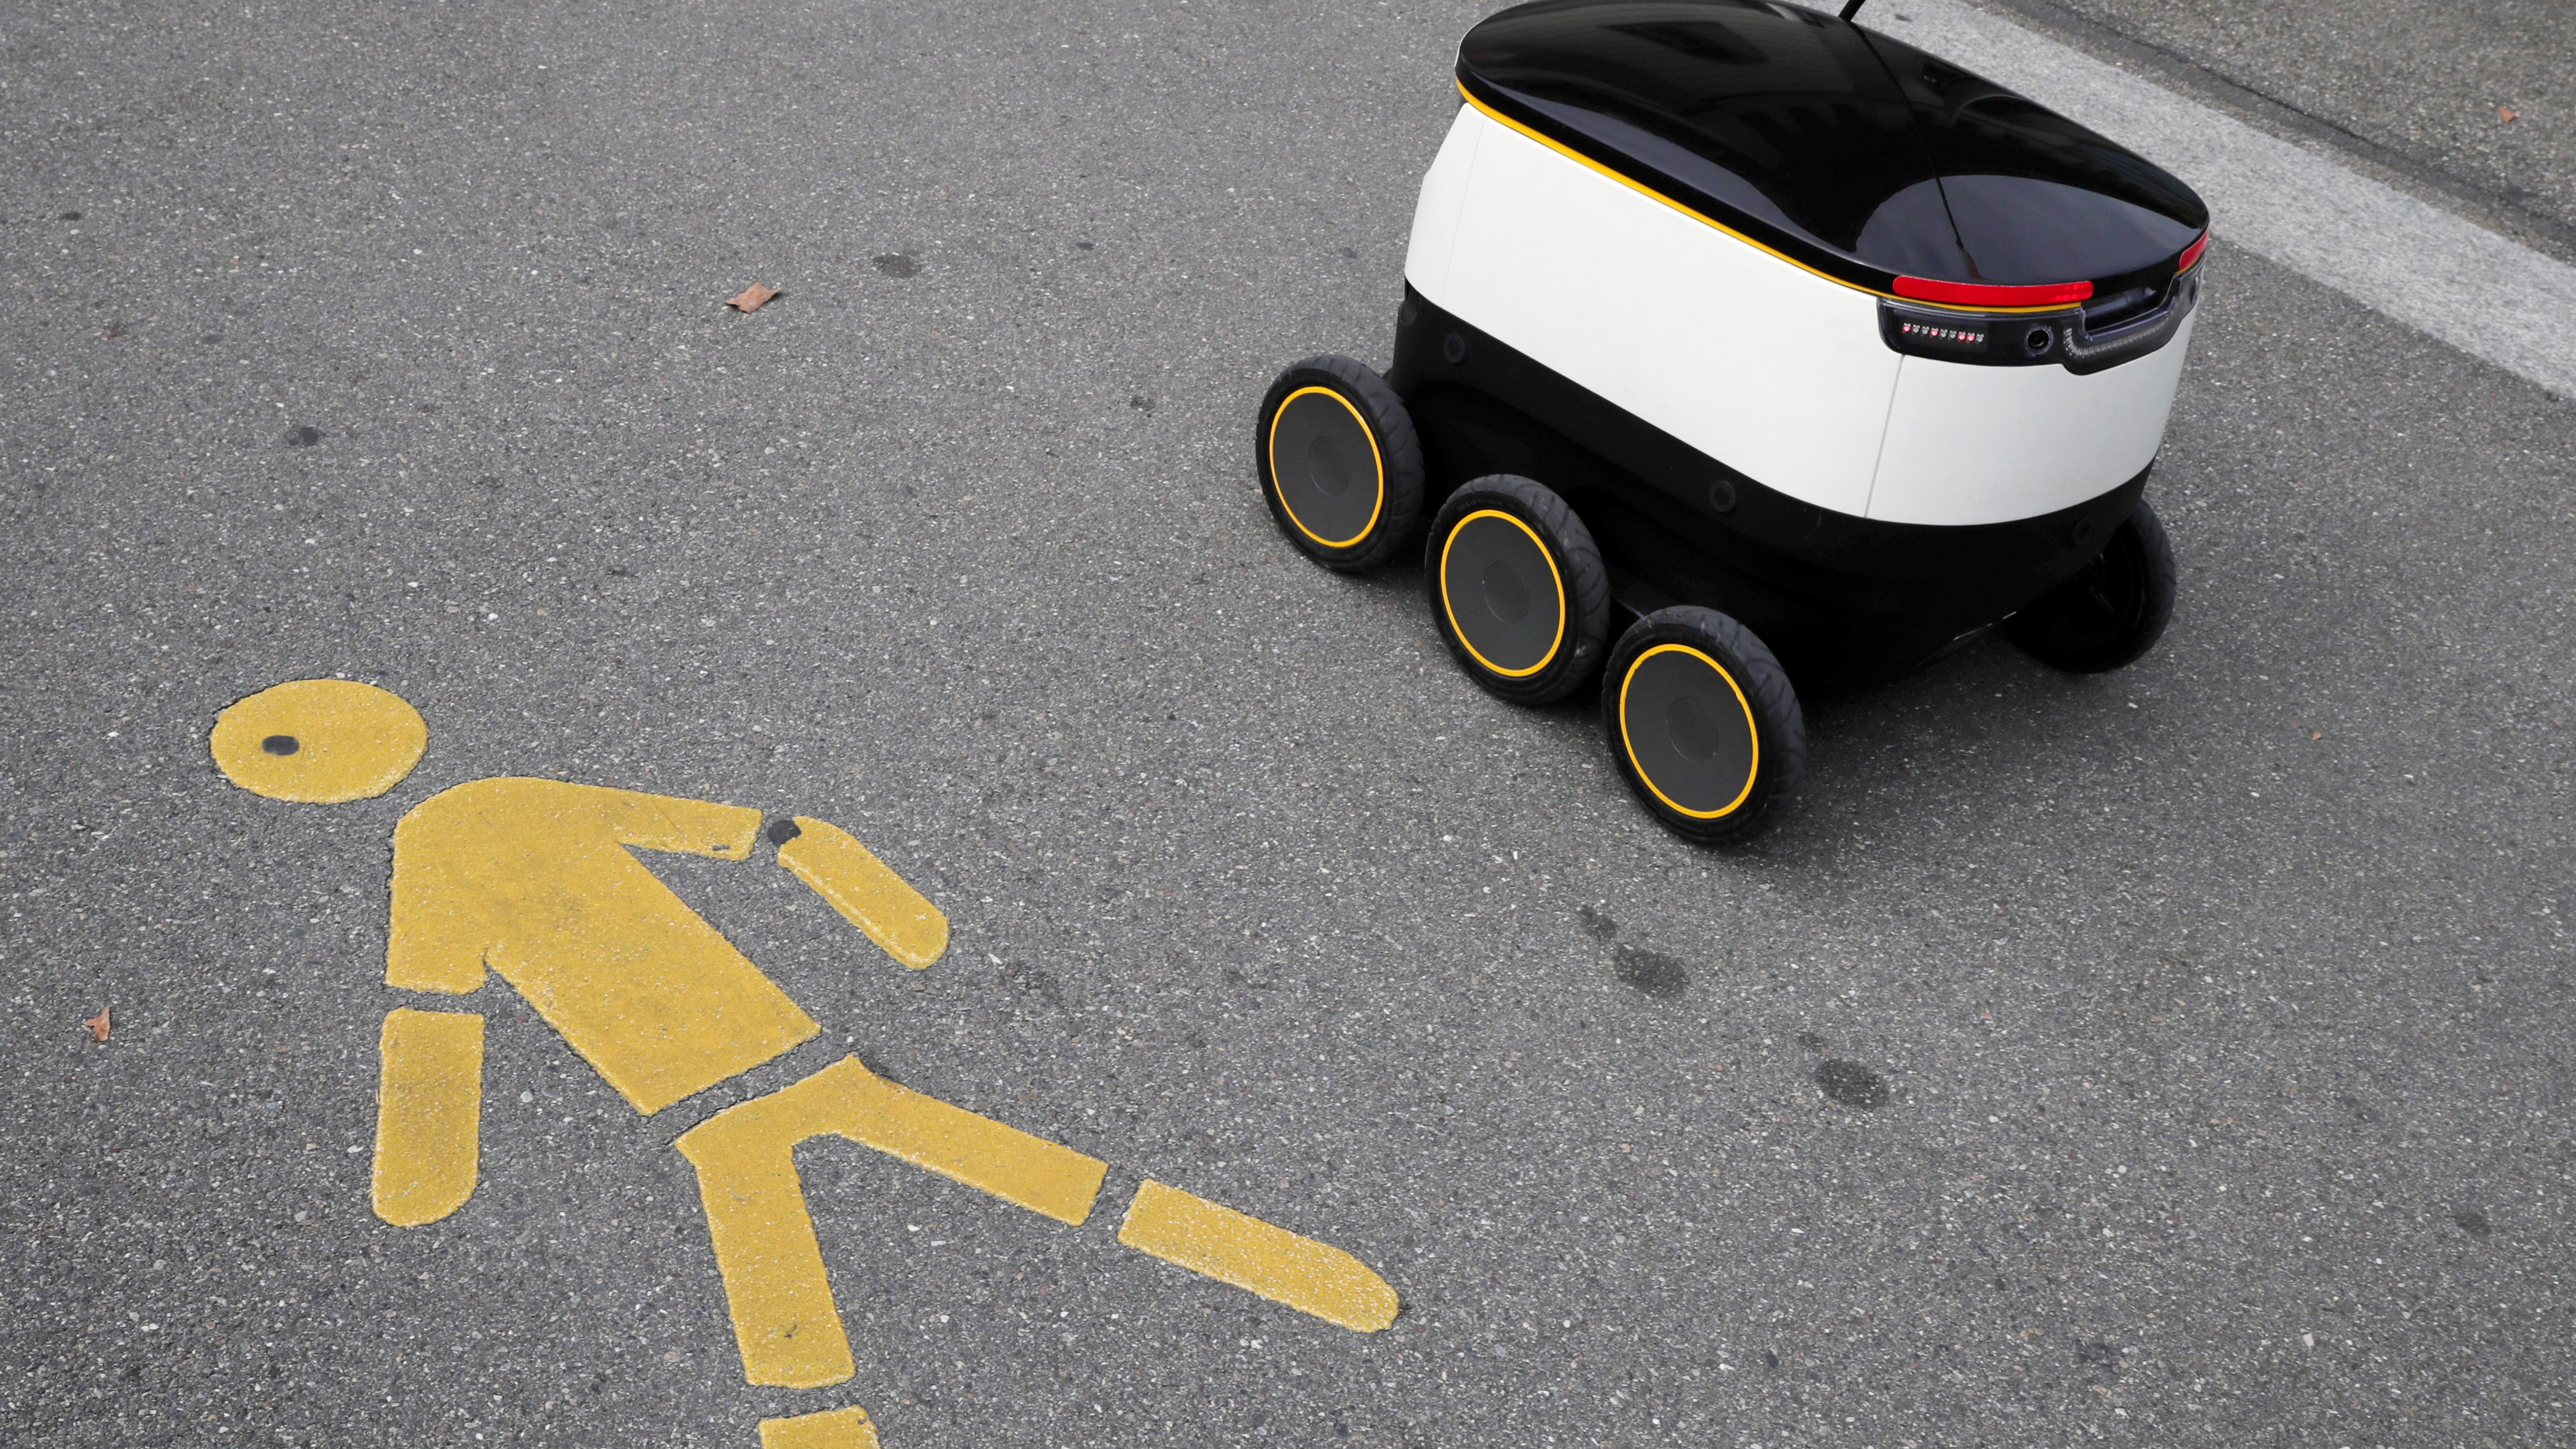 Delivery robot and pedestrian icon